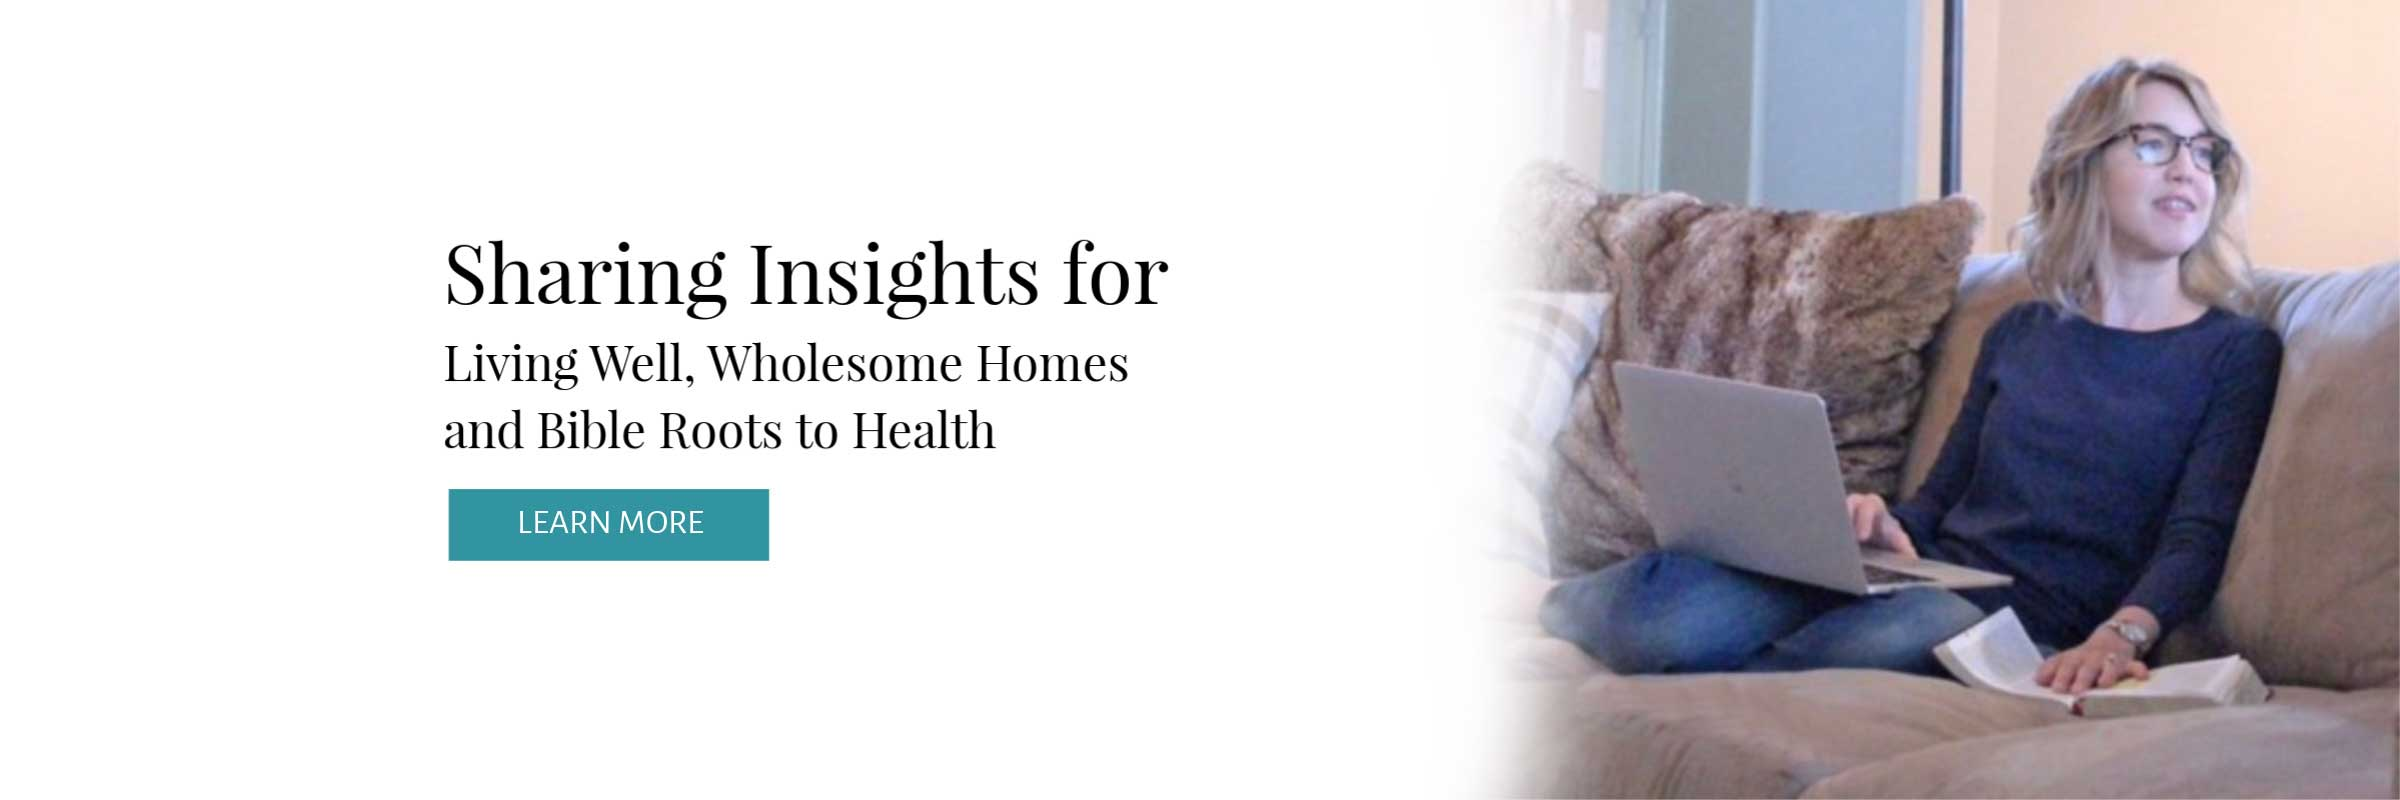 Well Made Wellness blog shares insights for living well, wholesome homes, and Bible roots to health.